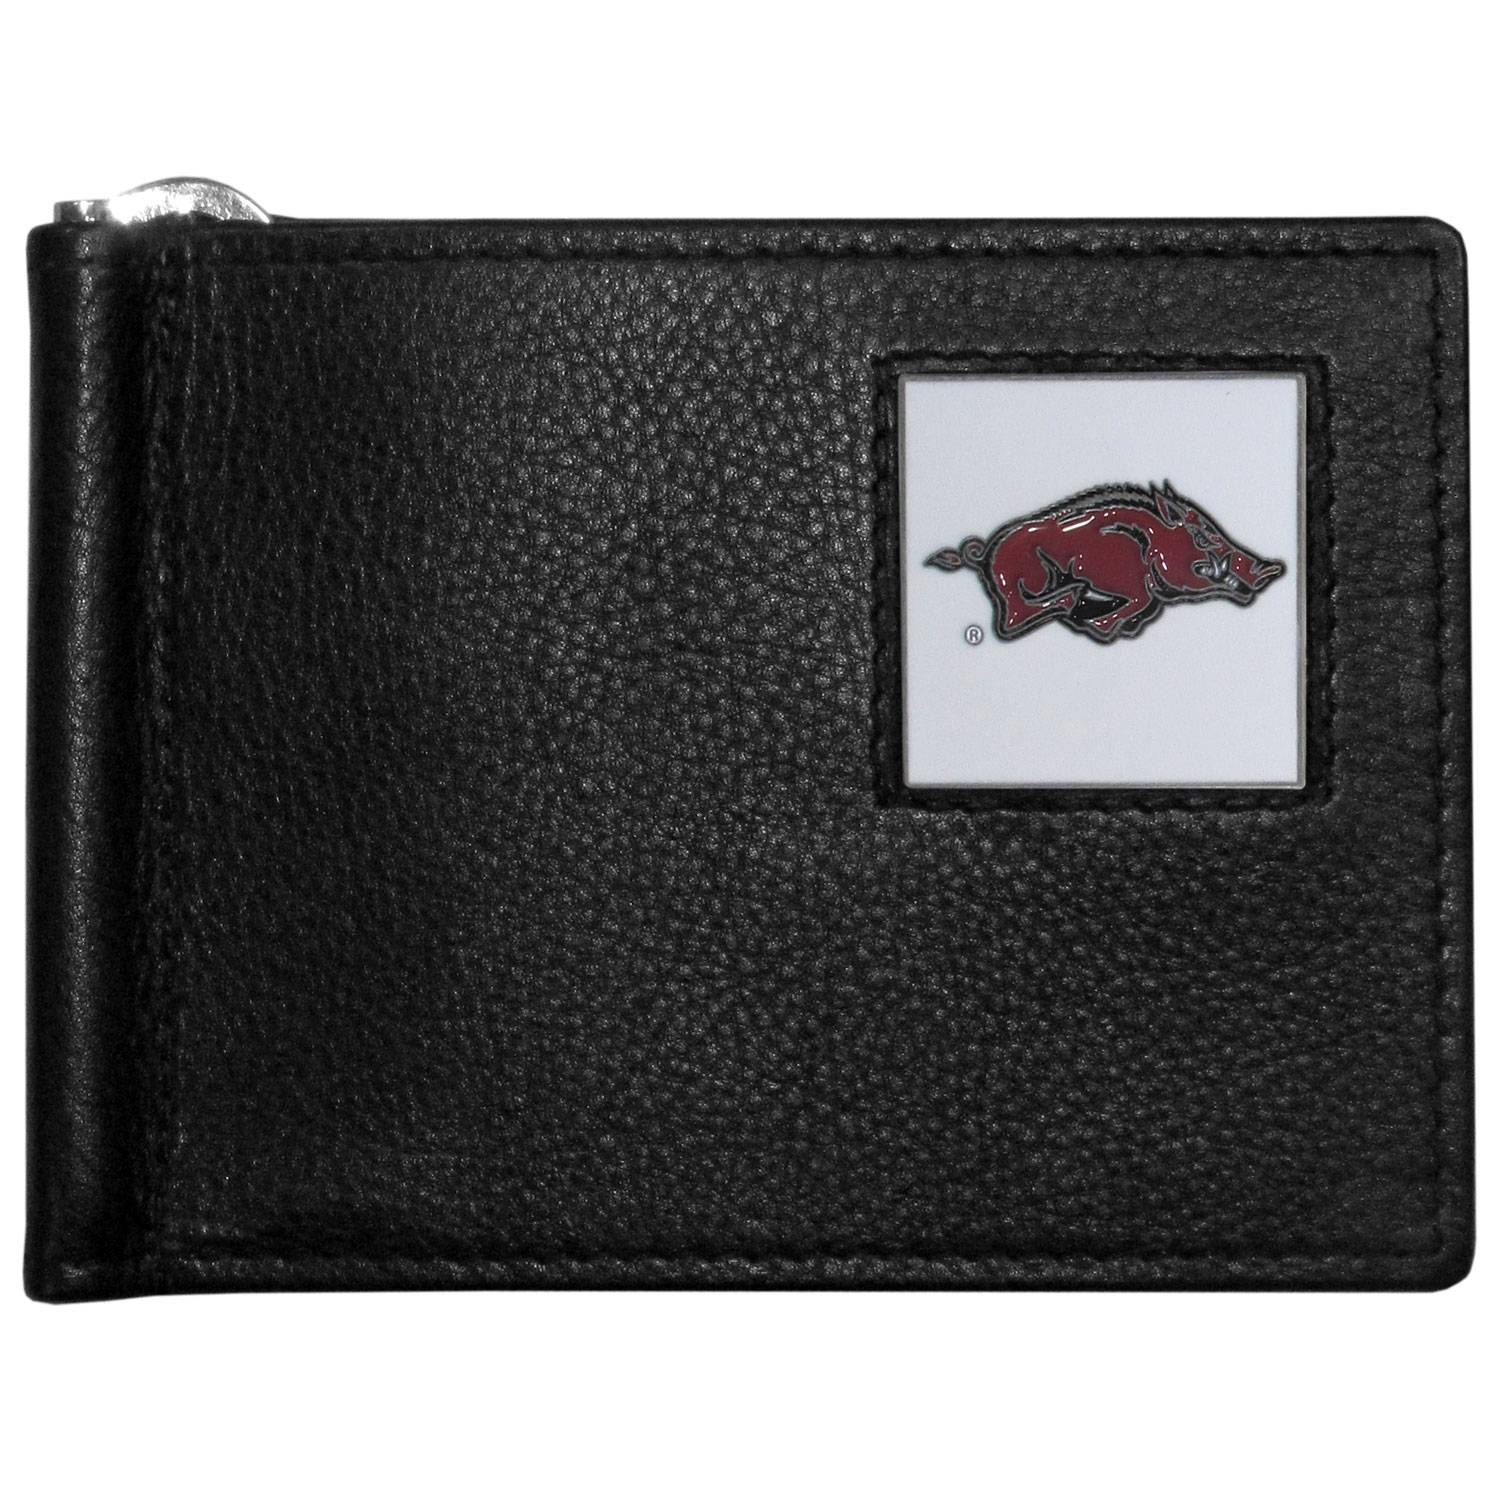 Arkansas Razorbacks Leather Bill Clip Wallet - This cool new style wallet features an inner, metal bill clip that lips up for easy access. The super slim wallet holds tons of stuff with ample pockets, credit card slots & windowed ID slot. The wallet is made of genuine fine grain leather and it finished with a metal Arkansas Razorbacks emblem. The wallet is shipped in gift box packaging.